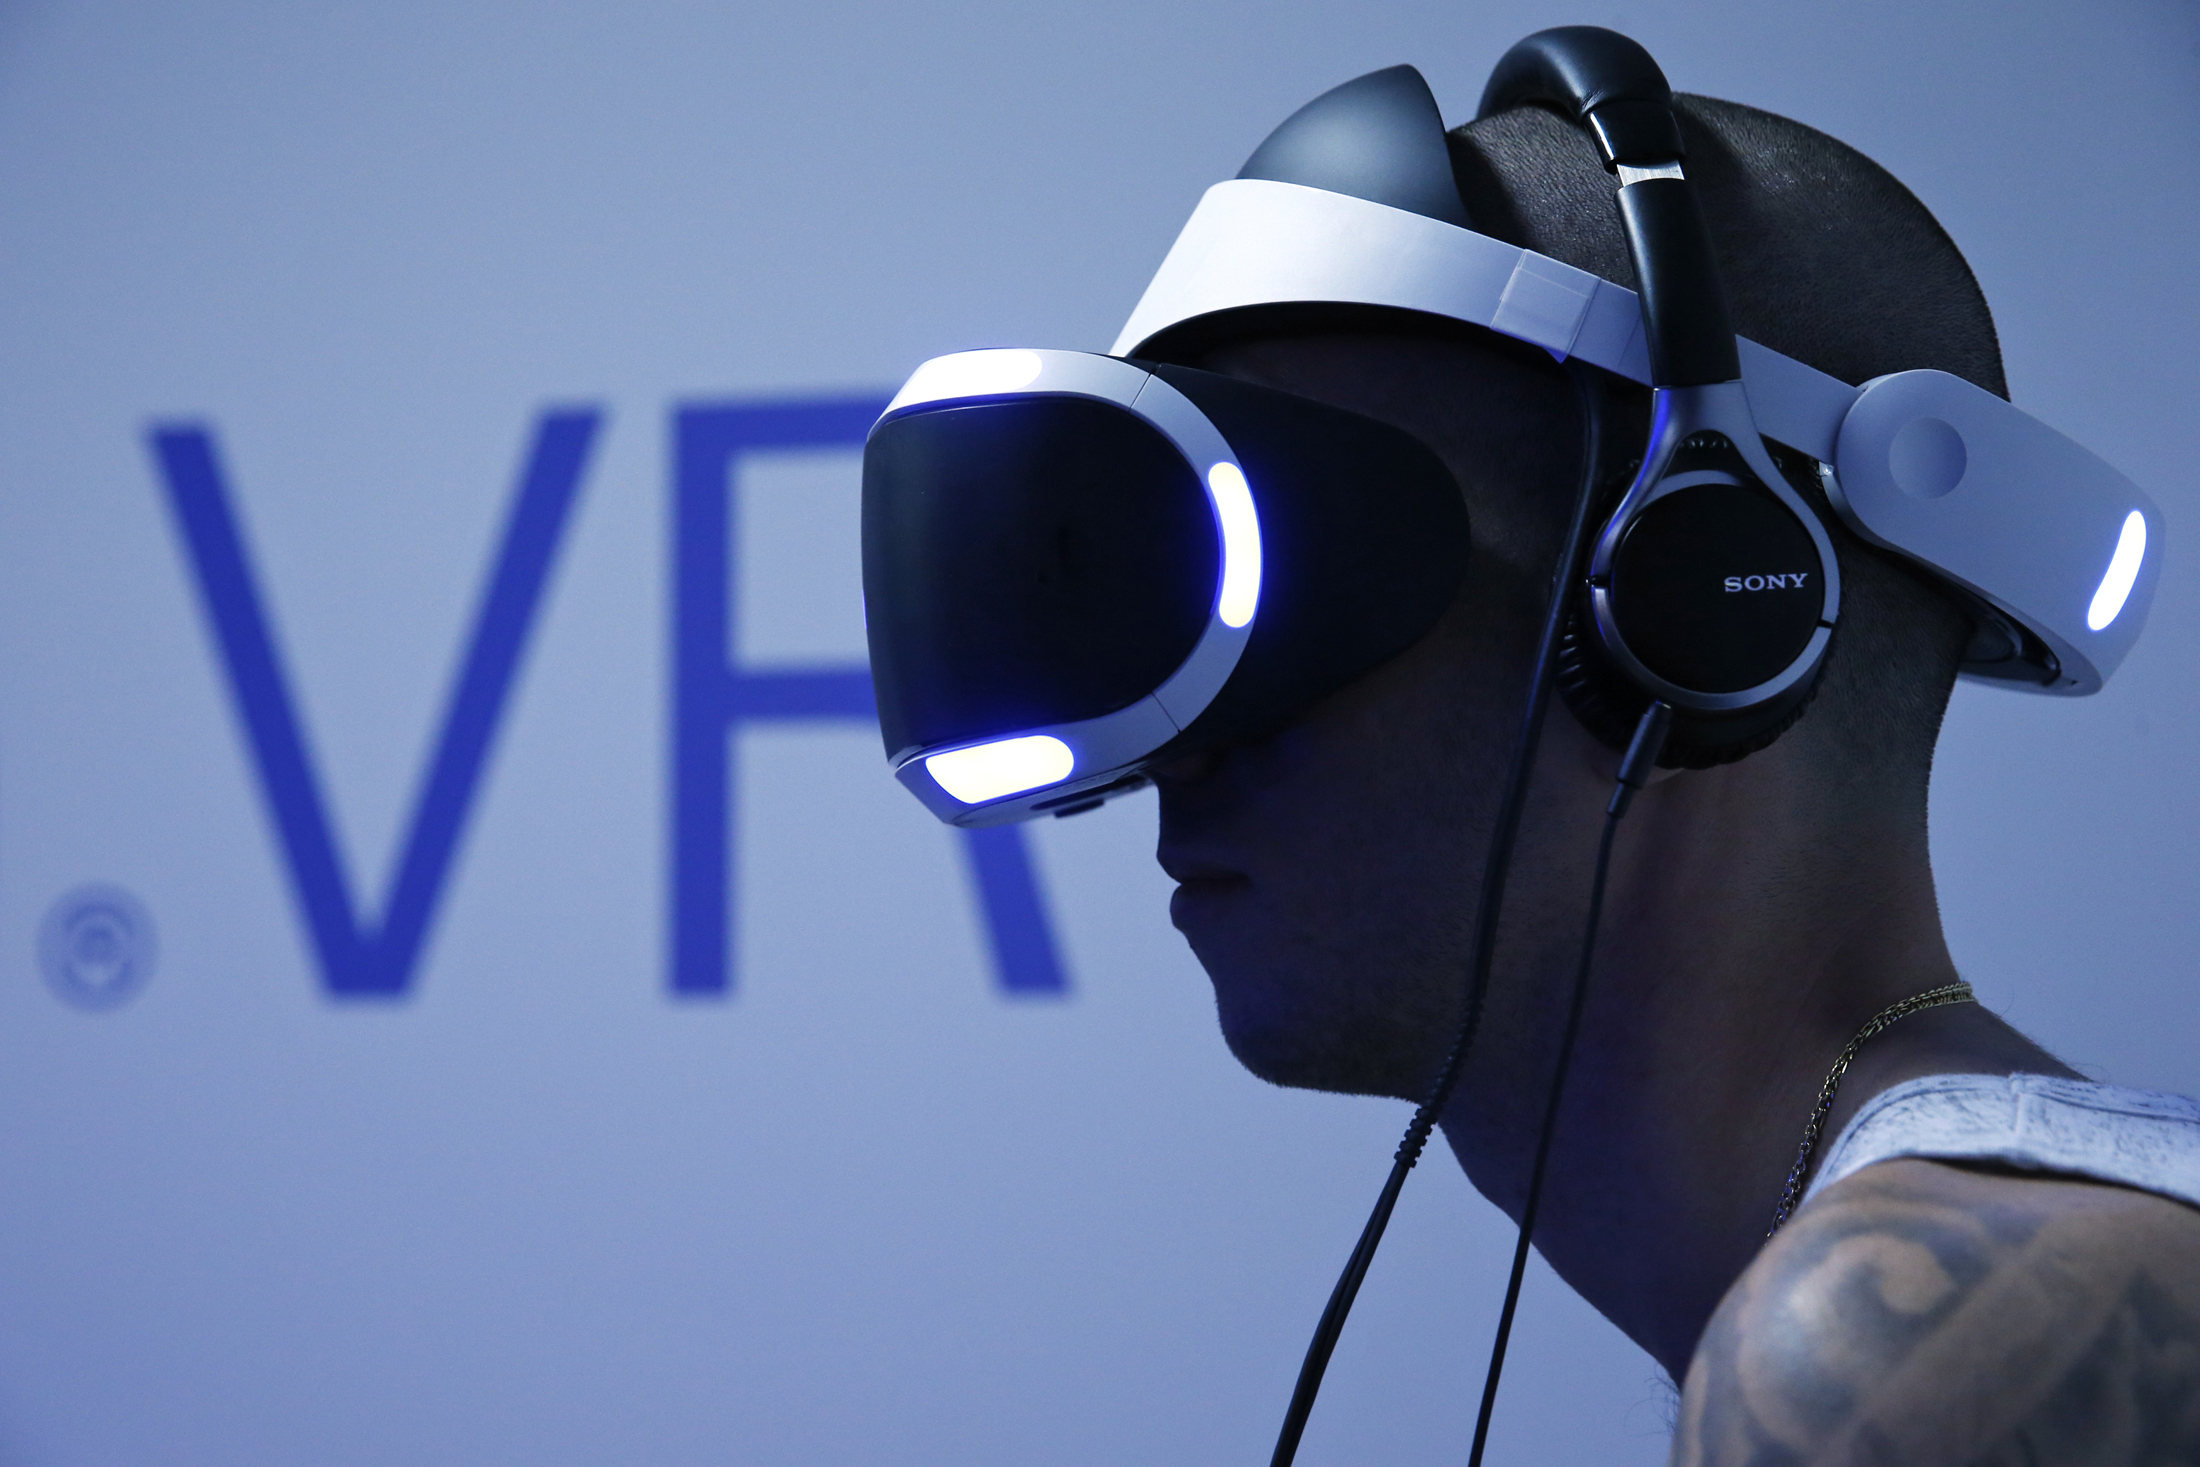 PlayStation VR headset rumored for fall launch